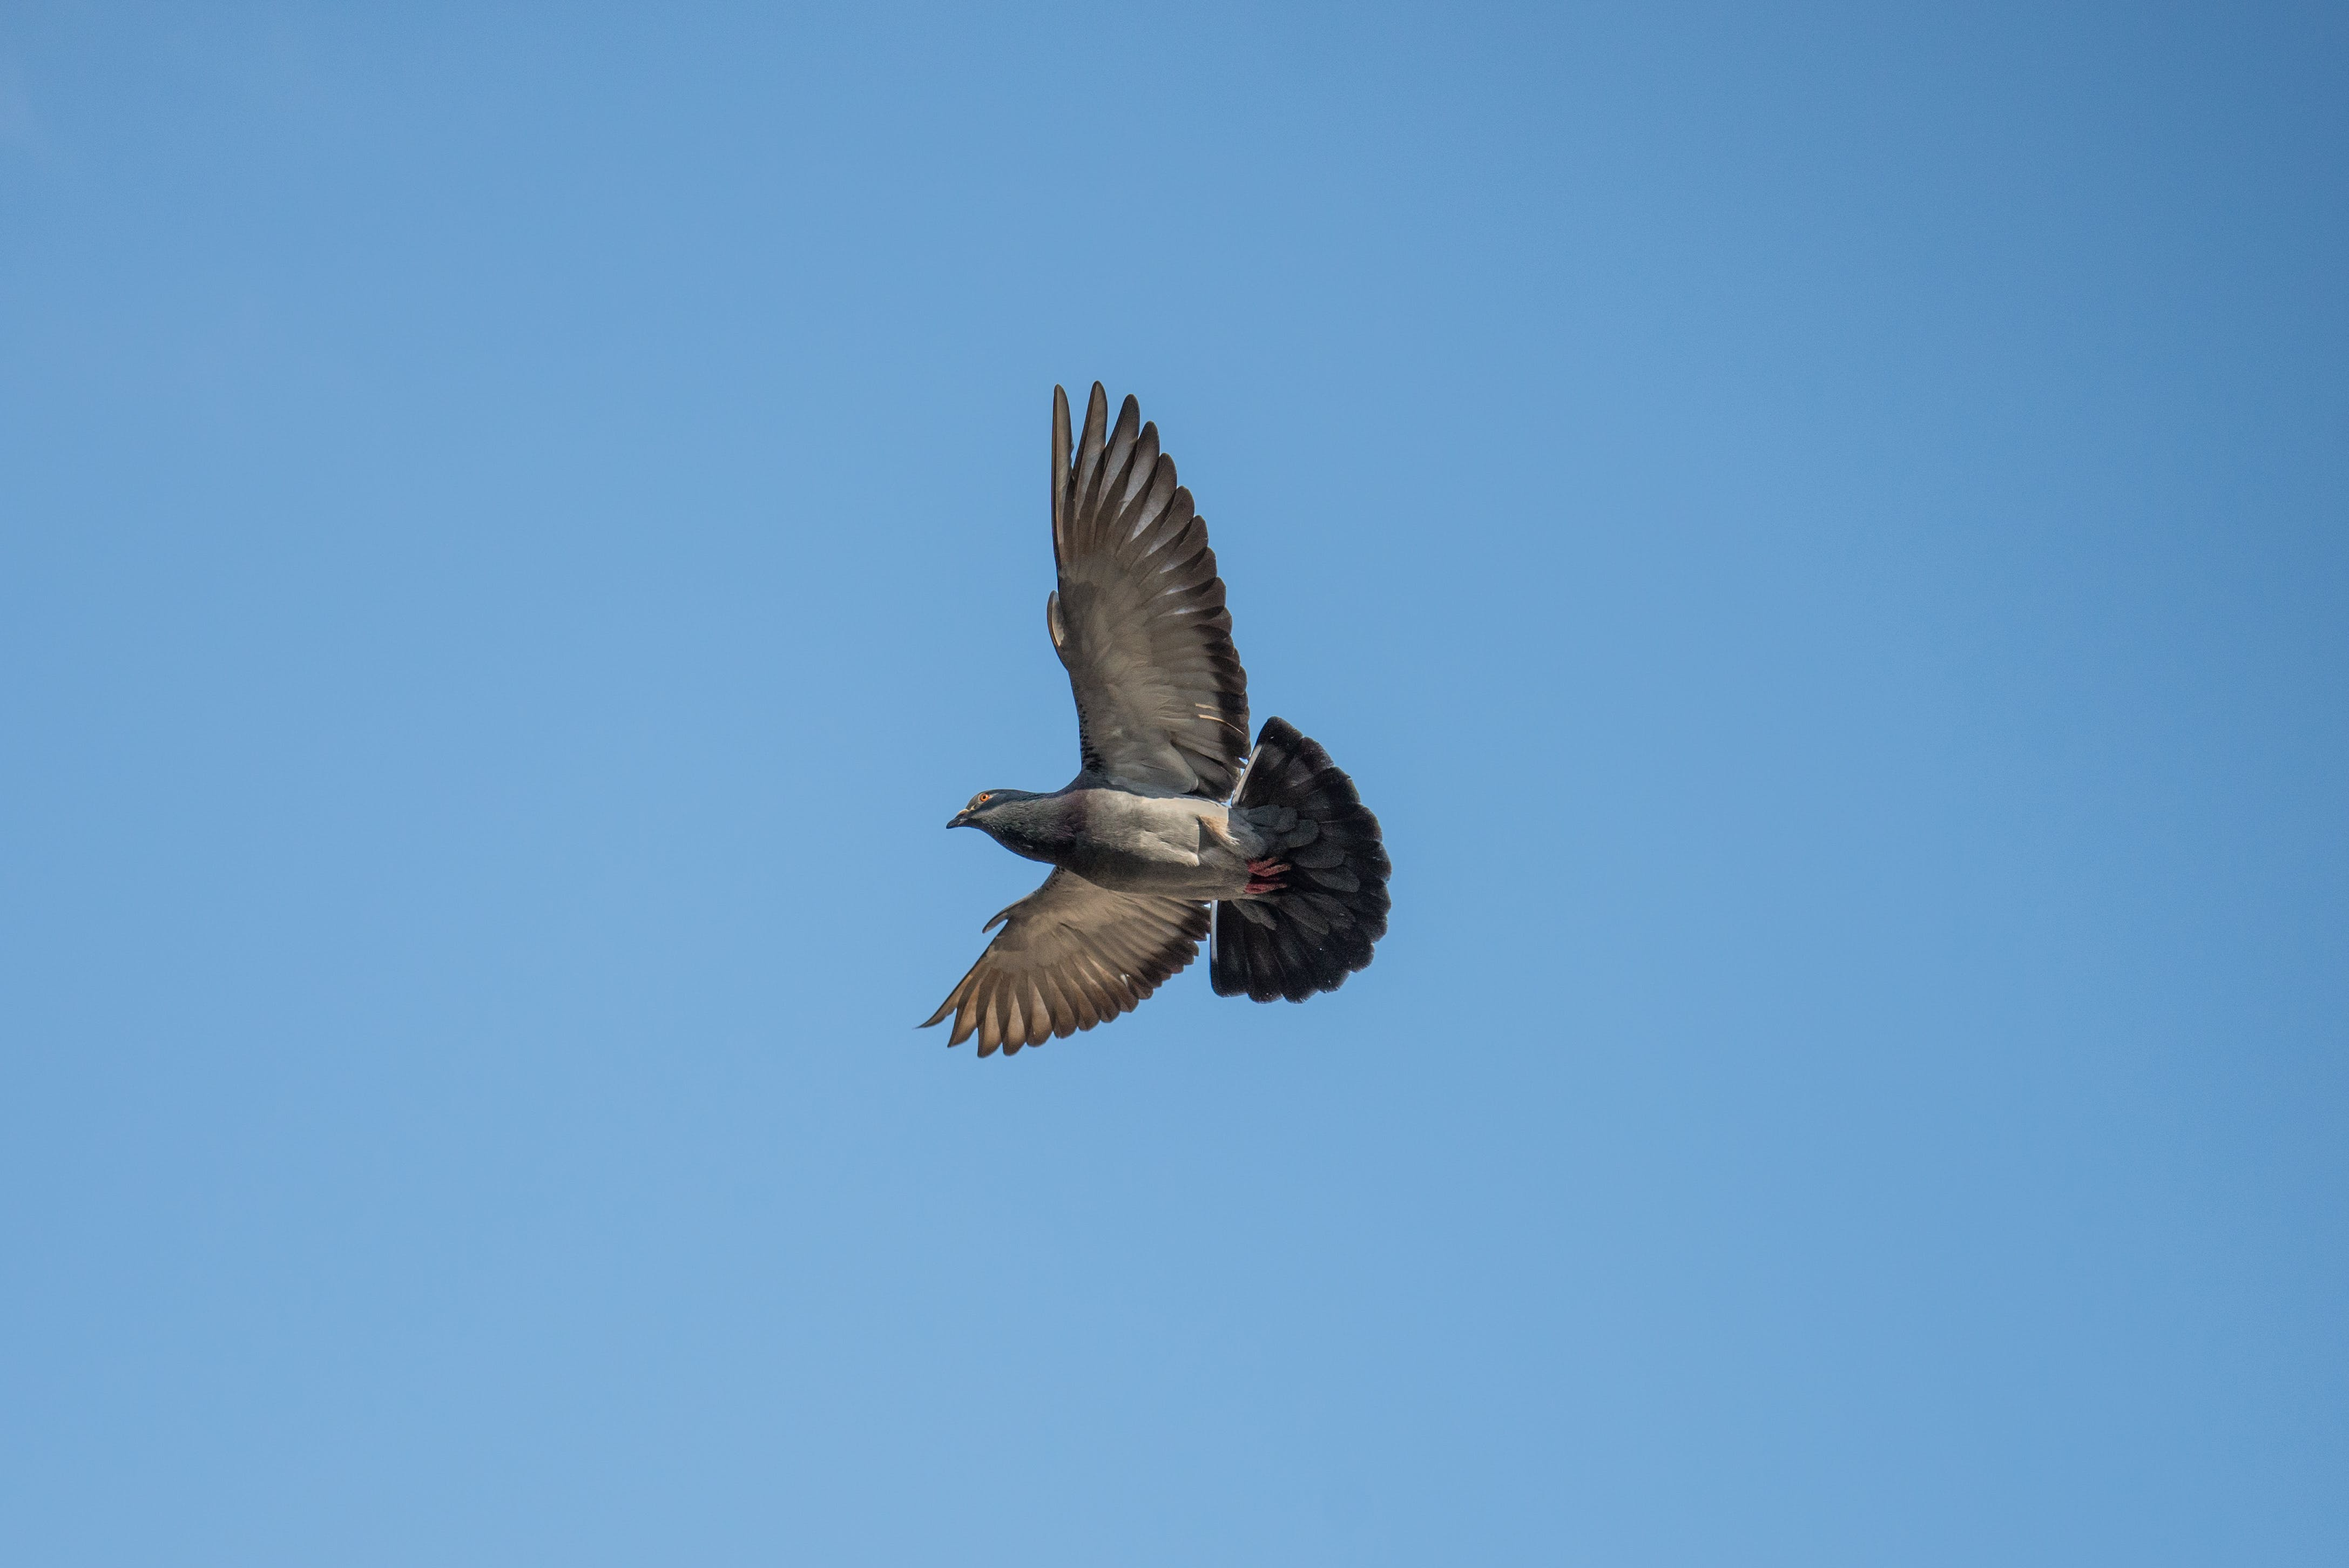 Gray and Black Bird Flying